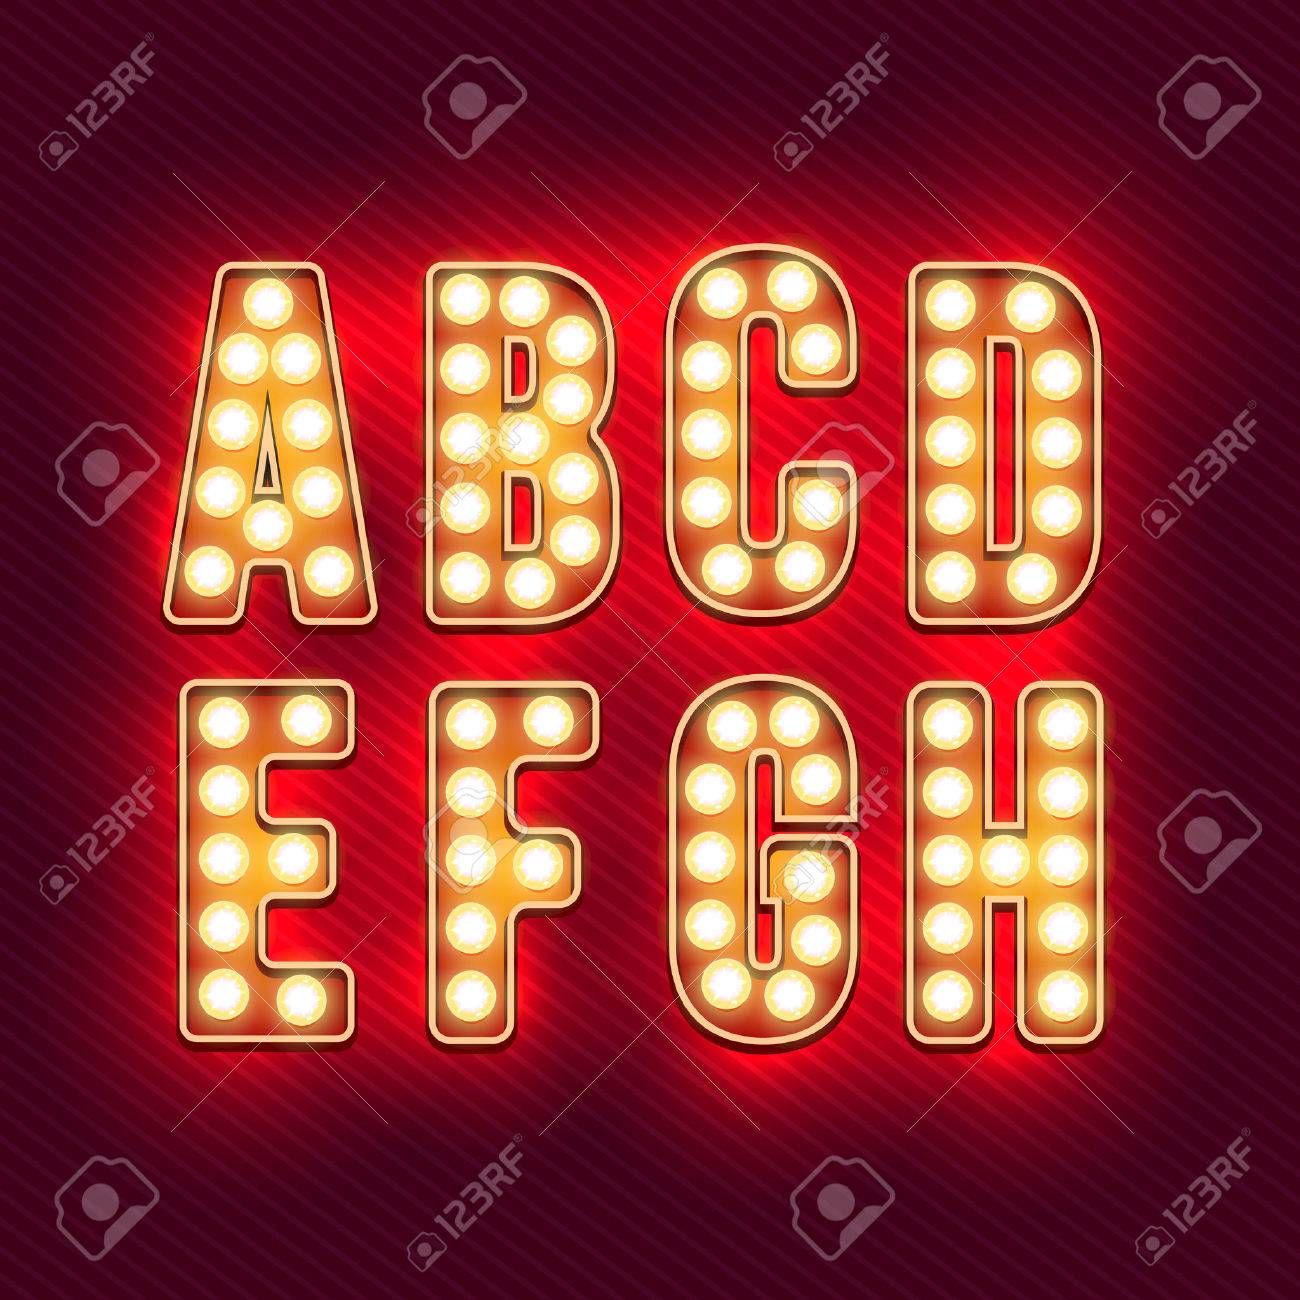 Retro alphabet. Realistic vintage letters. Neon light bulbs. Red retro letters. Set  sc 1 st  123RF.com & Retro Alphabet. Realistic Vintage Letters. Neon Light Bulbs ...